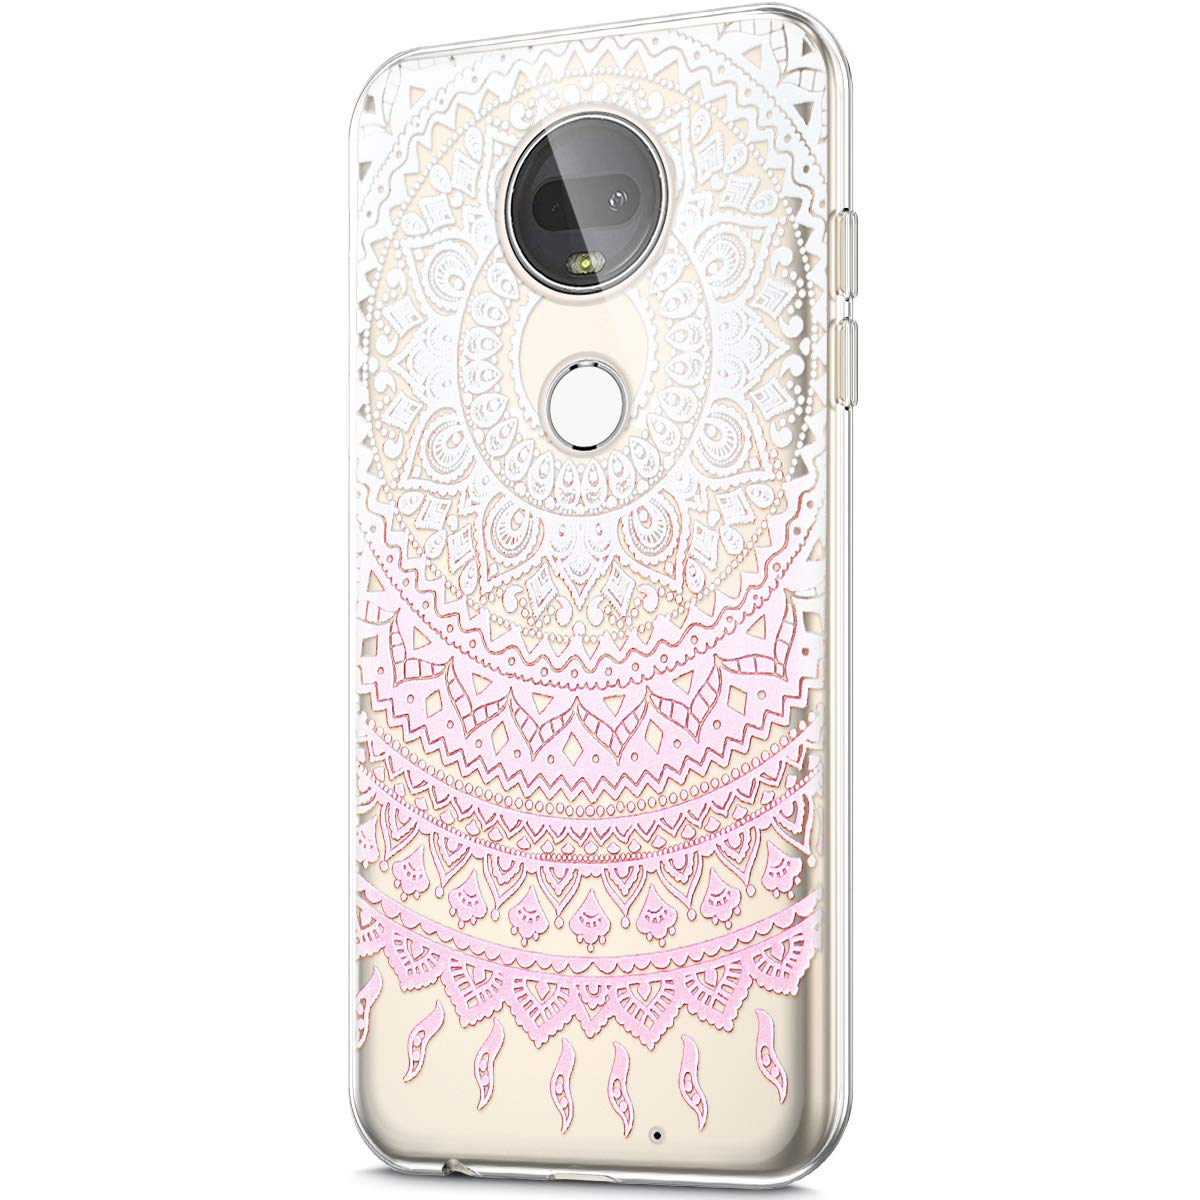 ikasus Case for Moto G7,Crystal Clear Art Panited Design Soft /& Flexible TPU Ultra-Thin Transparent Soft Rubber Gel TPU Protective Case Cover for Moto G7 Silicone Case,Pink Green Sun flower